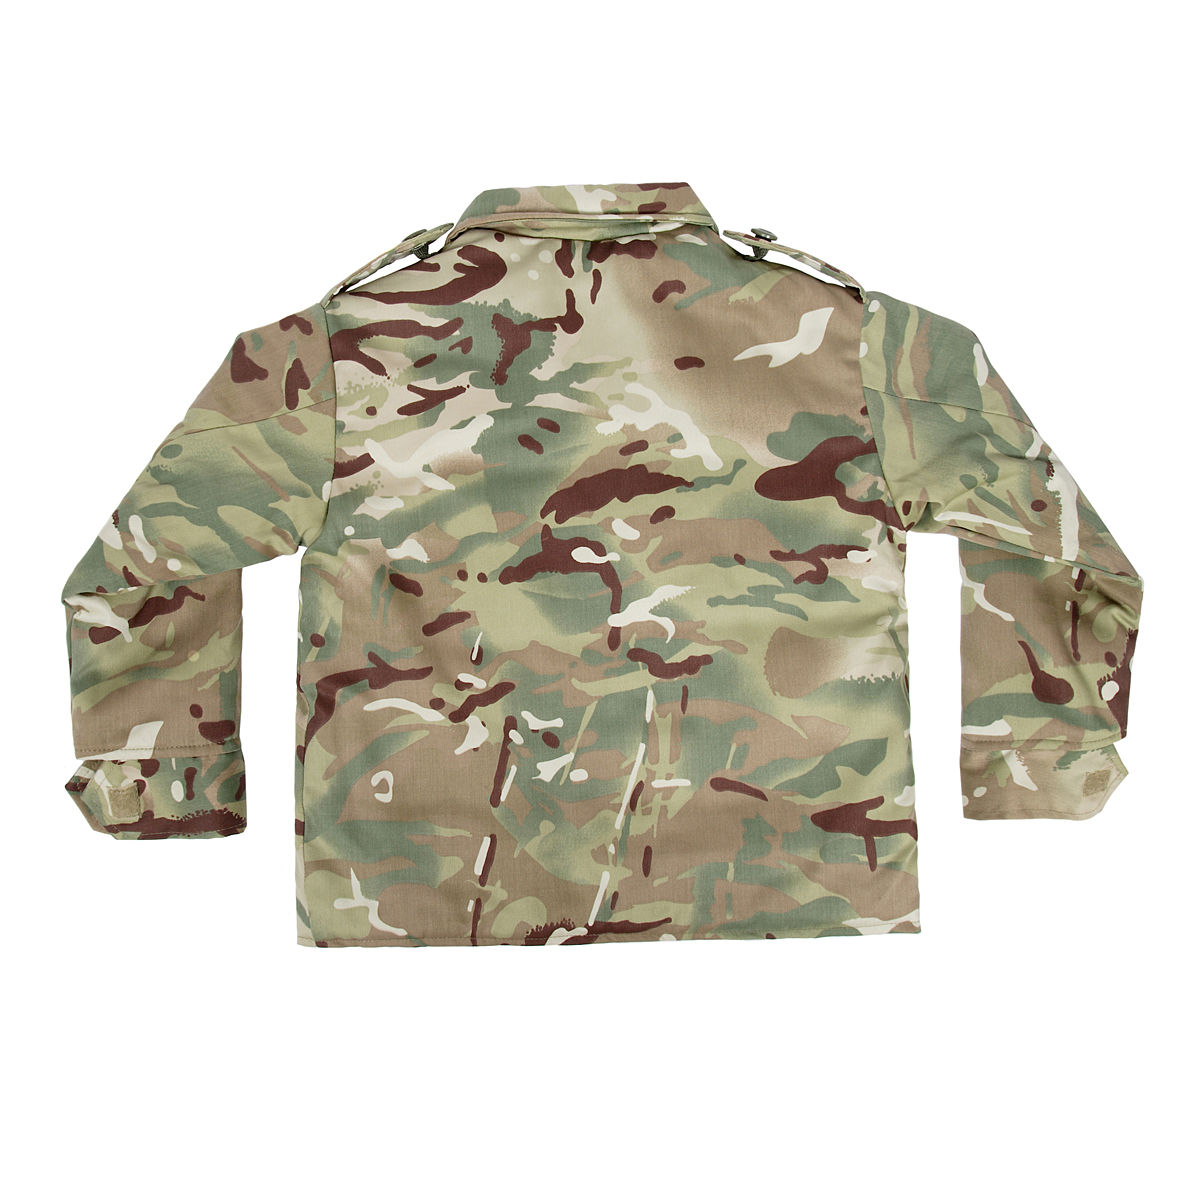 Youth Camo. Sports & Outdoors. Outdoor Sports. Hunting. Hunting Clothing. Military Uniform Supply KIDS Camouflage Ghillie Suit - WOODLAND CAMO - Small/Medium. Product Image. Price $ ASAT Outdoors Youth Series Insulated Bomber Jacket Camo .